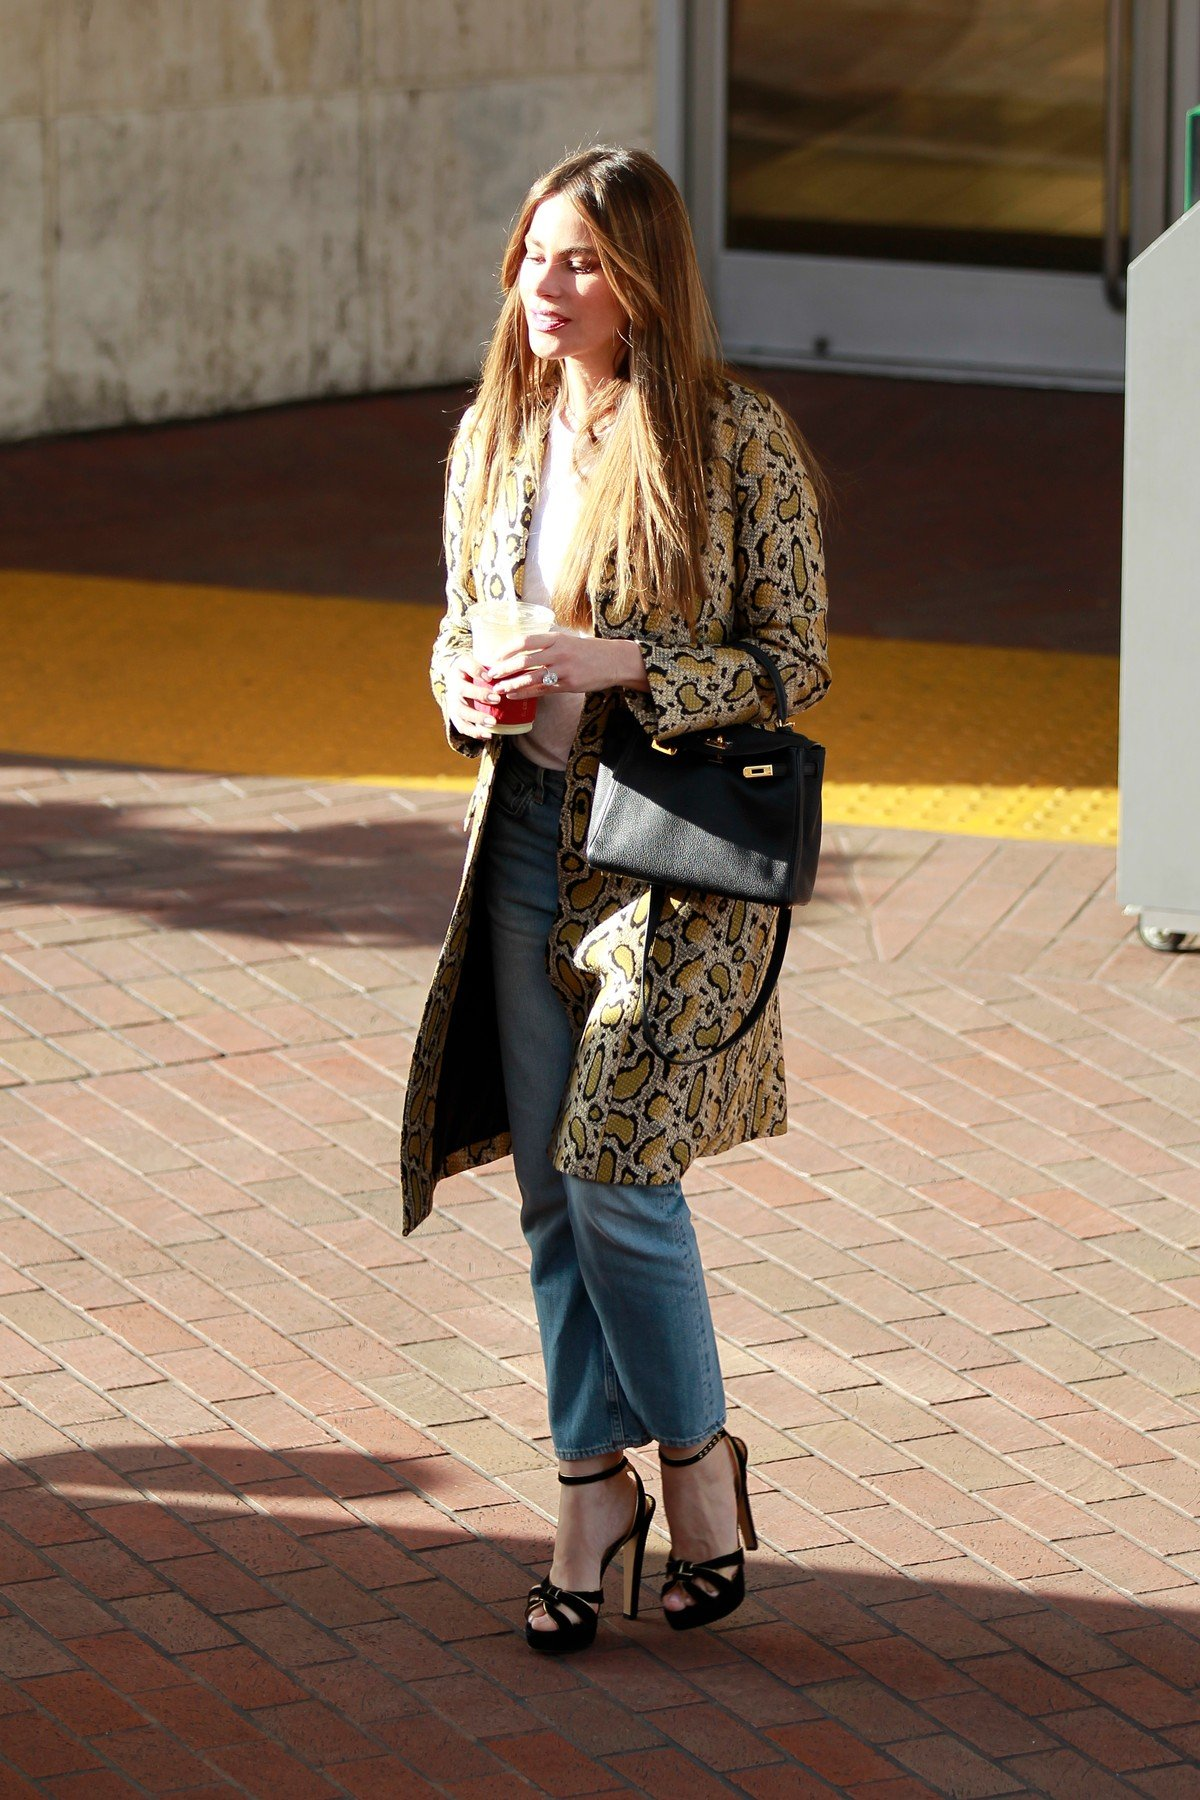 FIA EXCLU! Sofia Vergara looks elegant and chic as she pairs blue denim with t-shirt and leopard-print trench coat while shopping in Beverly Hills 03/26/19!, Image: 422445071, License: Rights-managed, Restrictions: , Model Release: no, Credit line: Profimedia, FIA